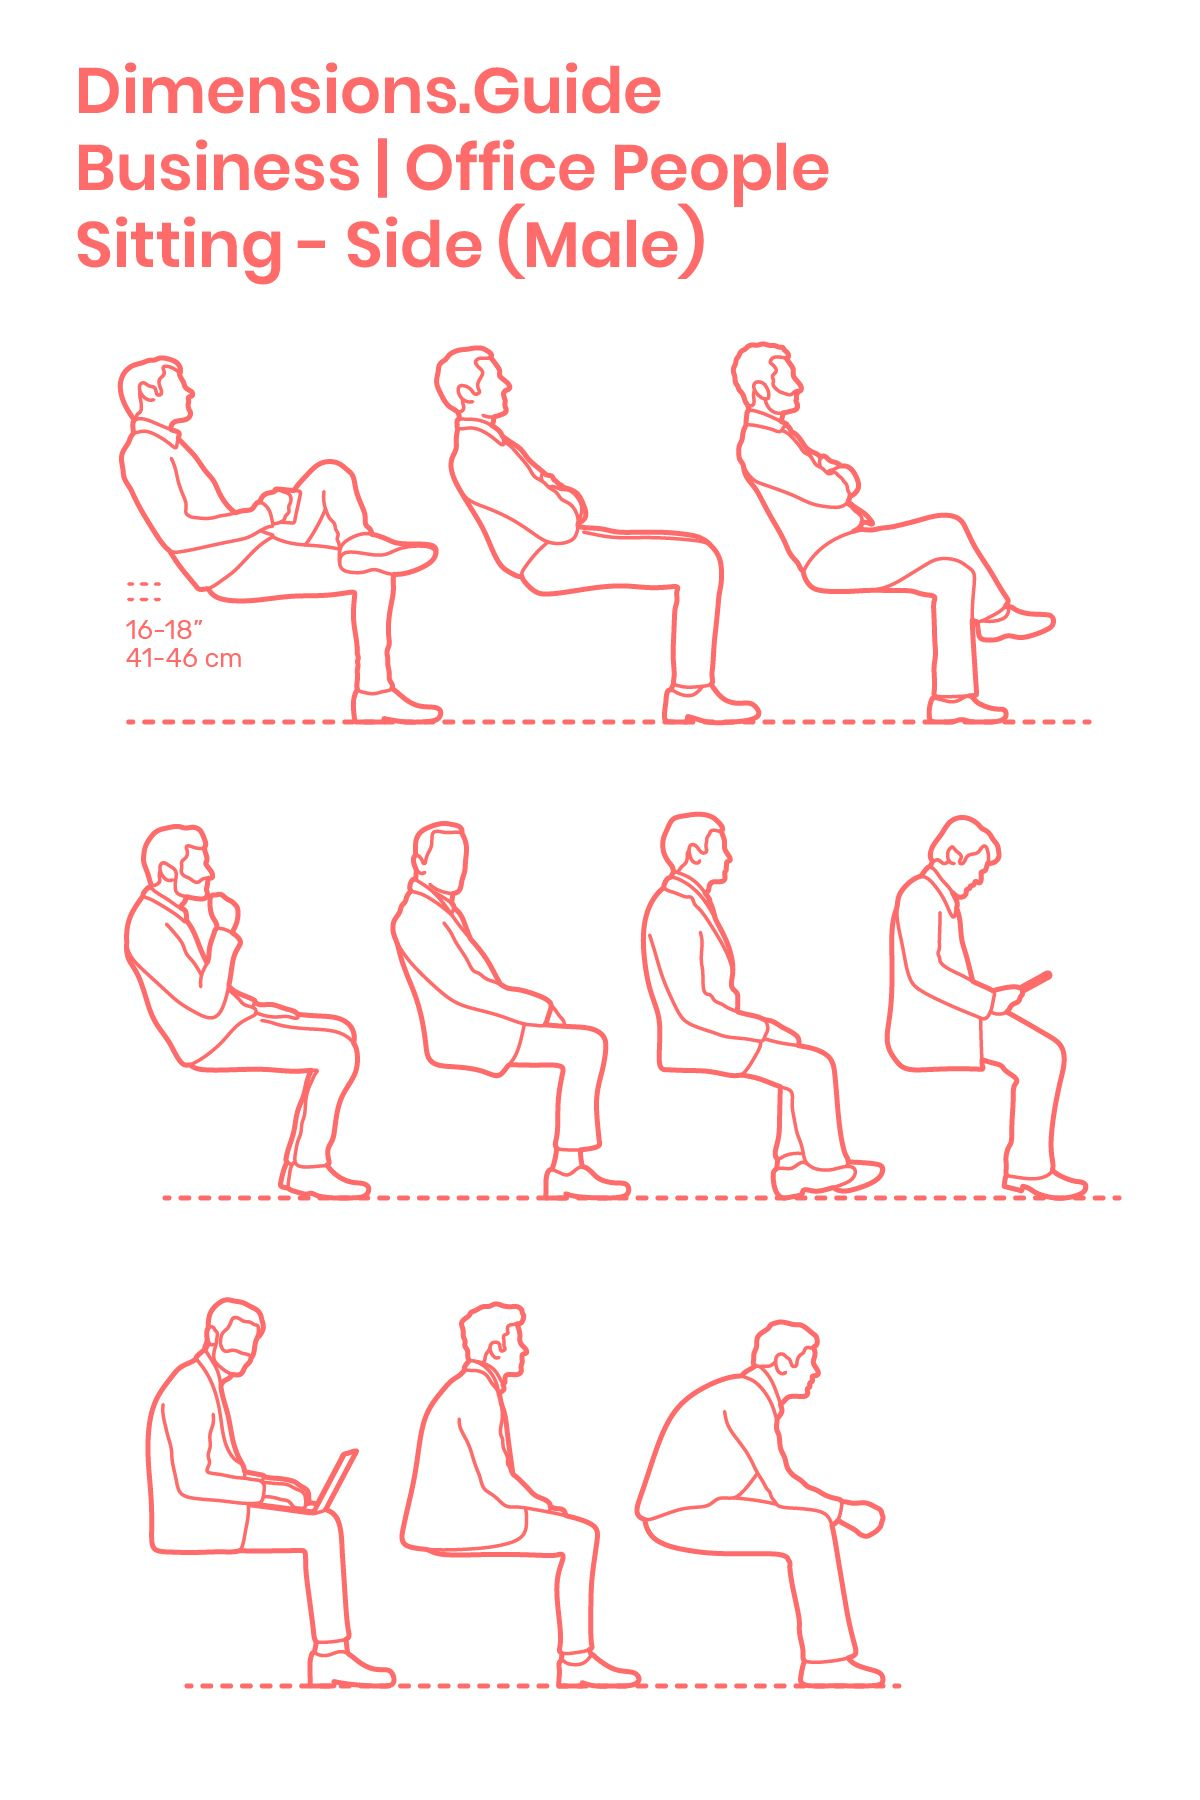 Assorted drawings of businessmen in various sitting postures